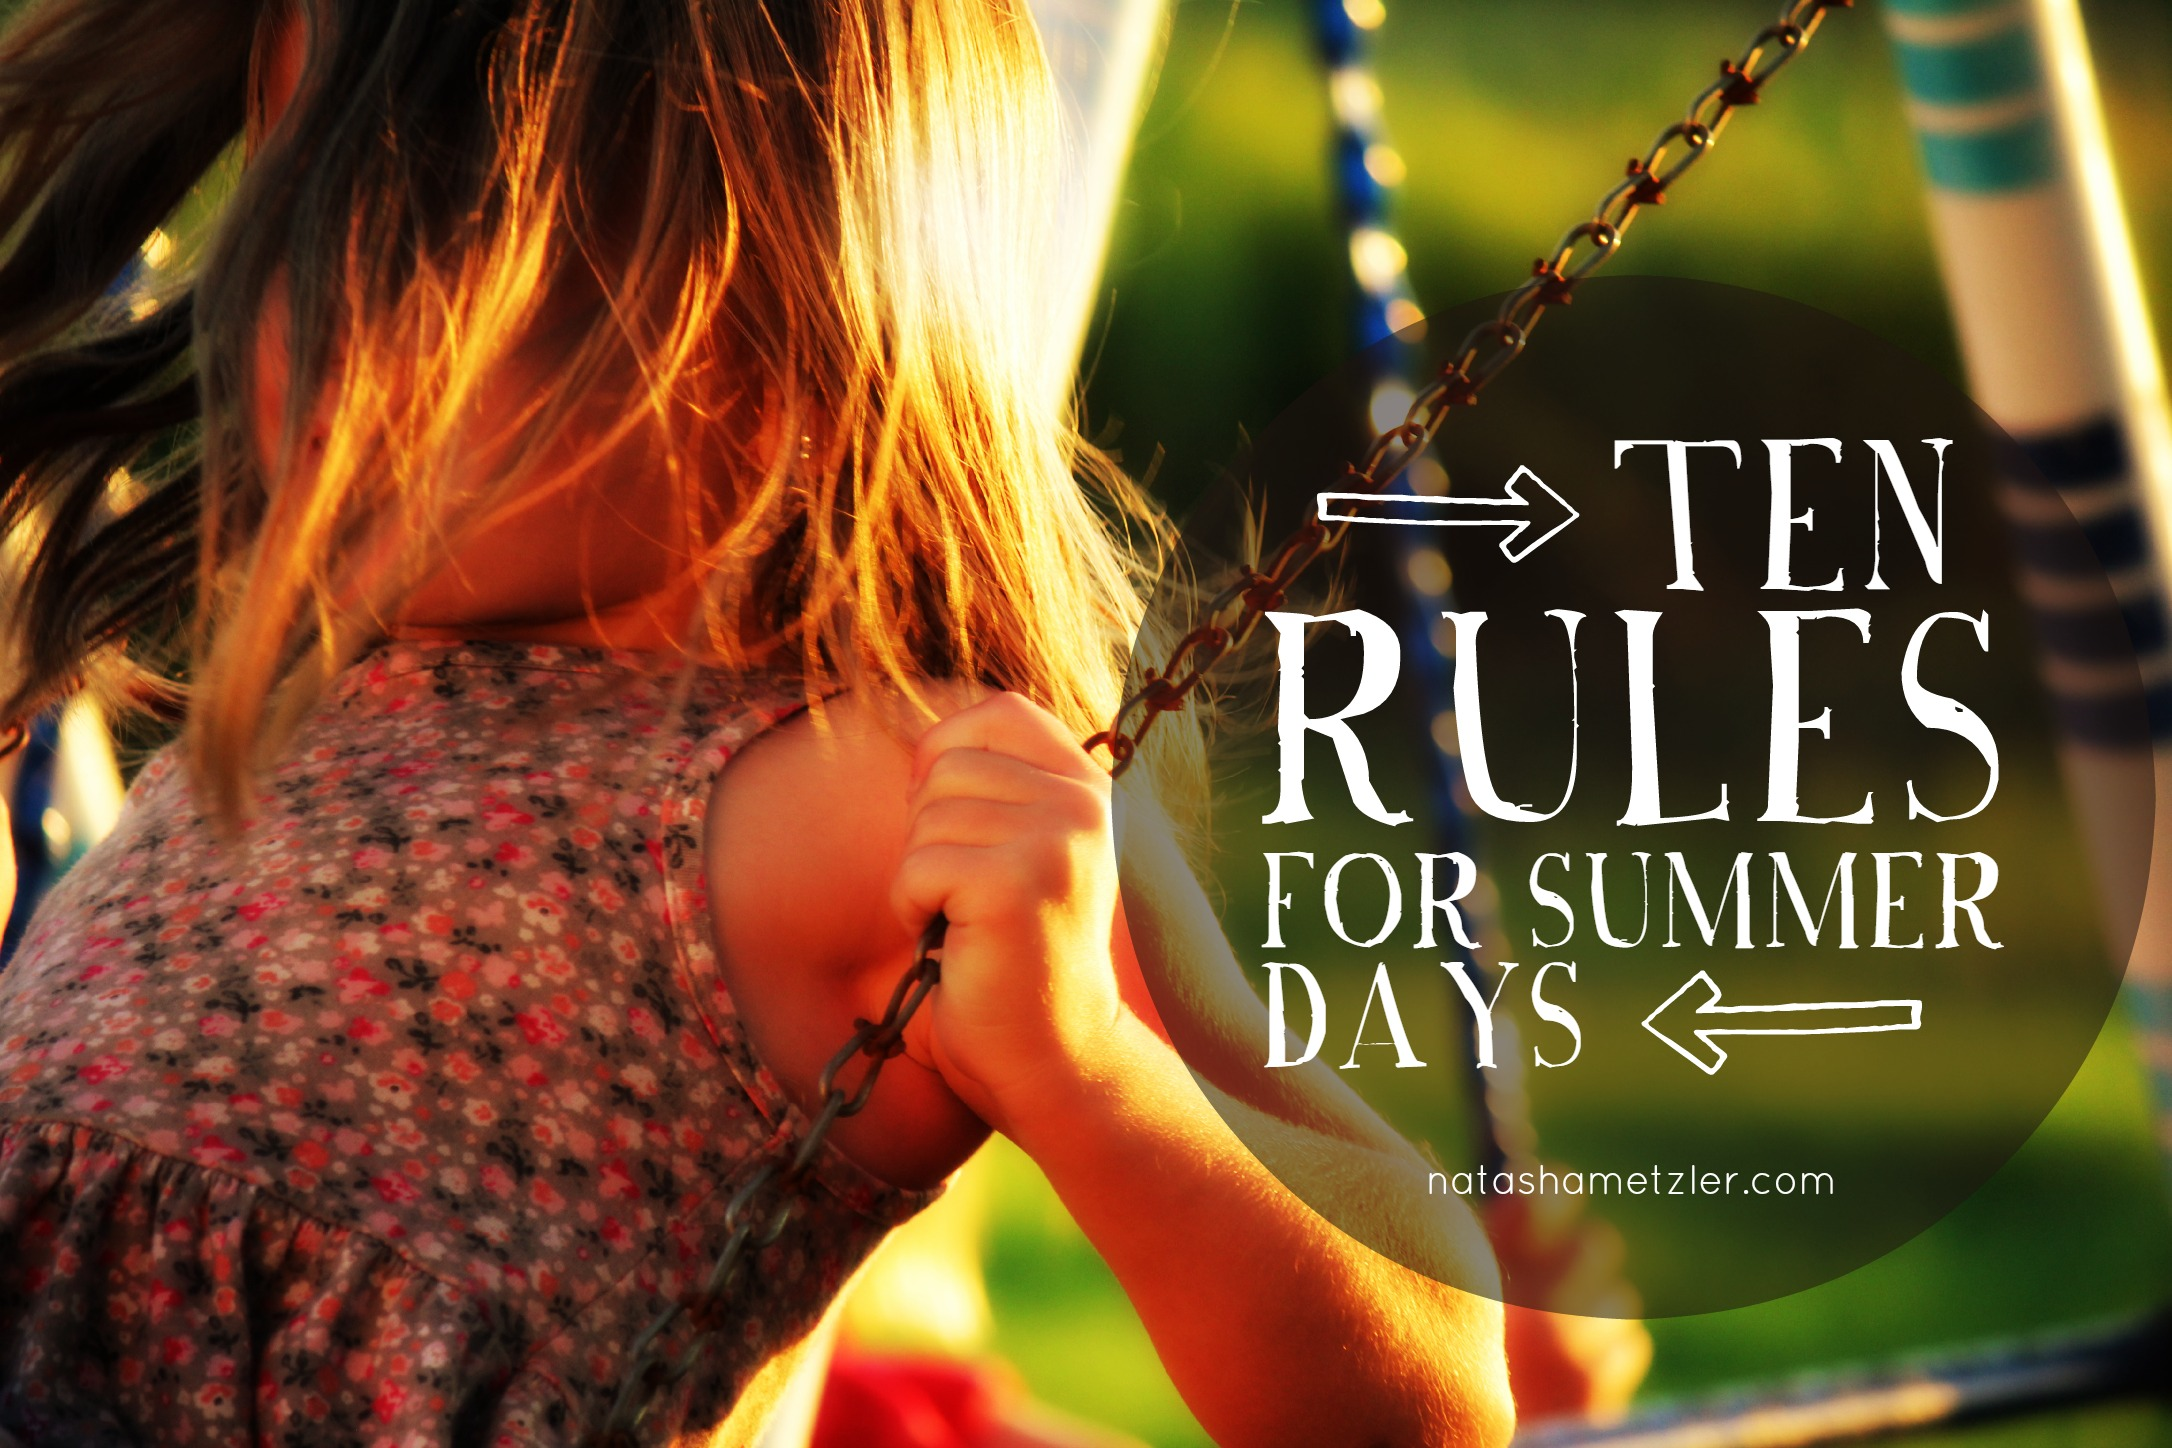 10 rules for summer days